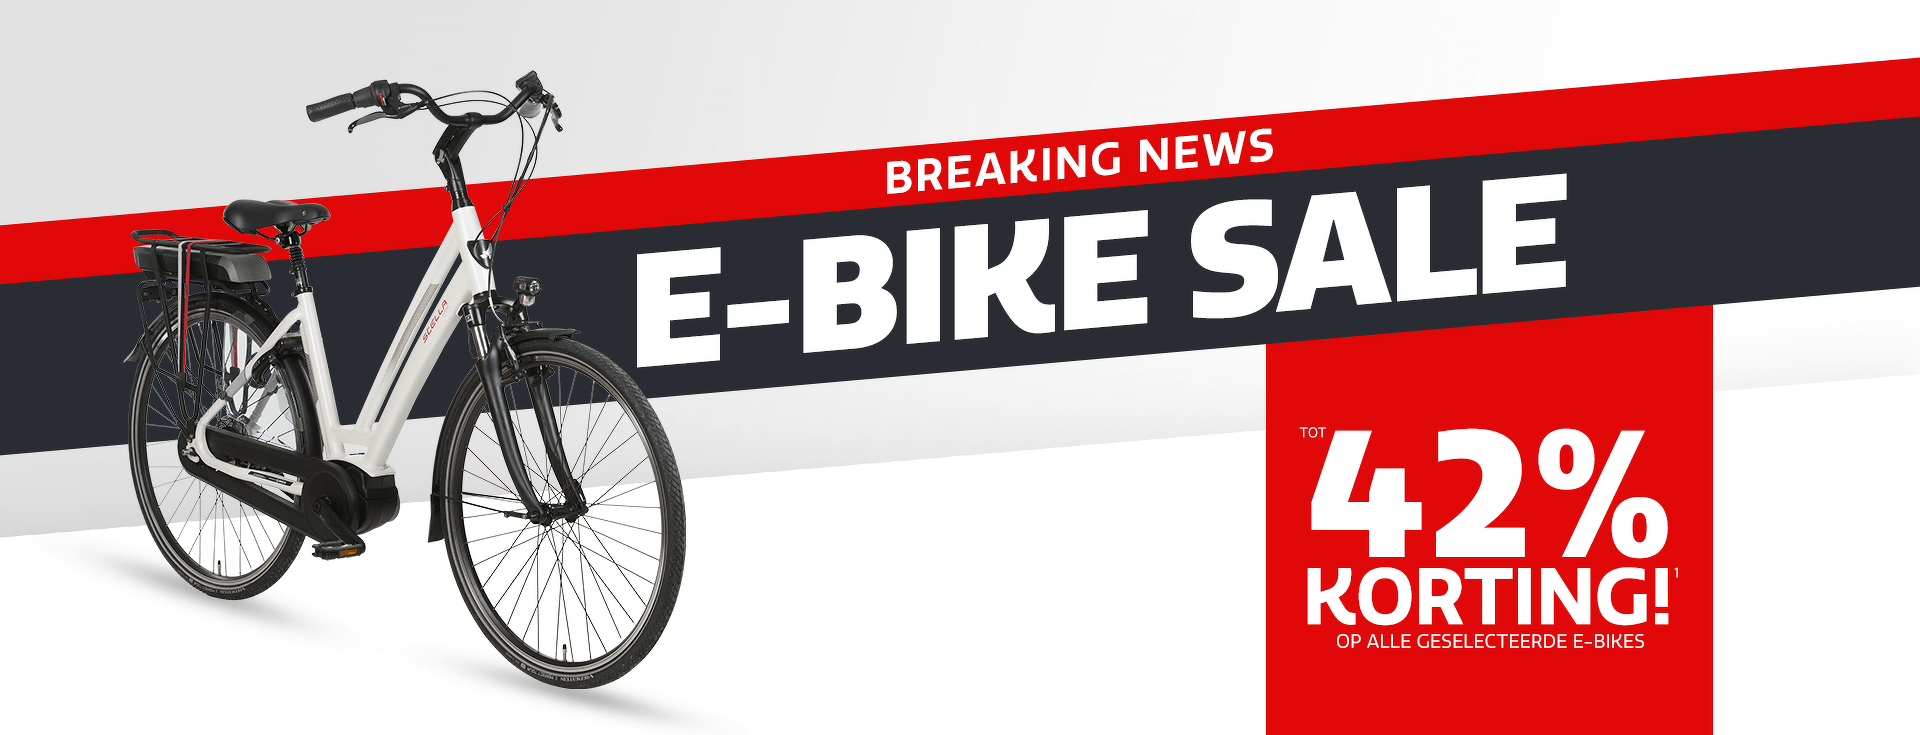 E-bike Sale - Tot 42% E-bike Korting